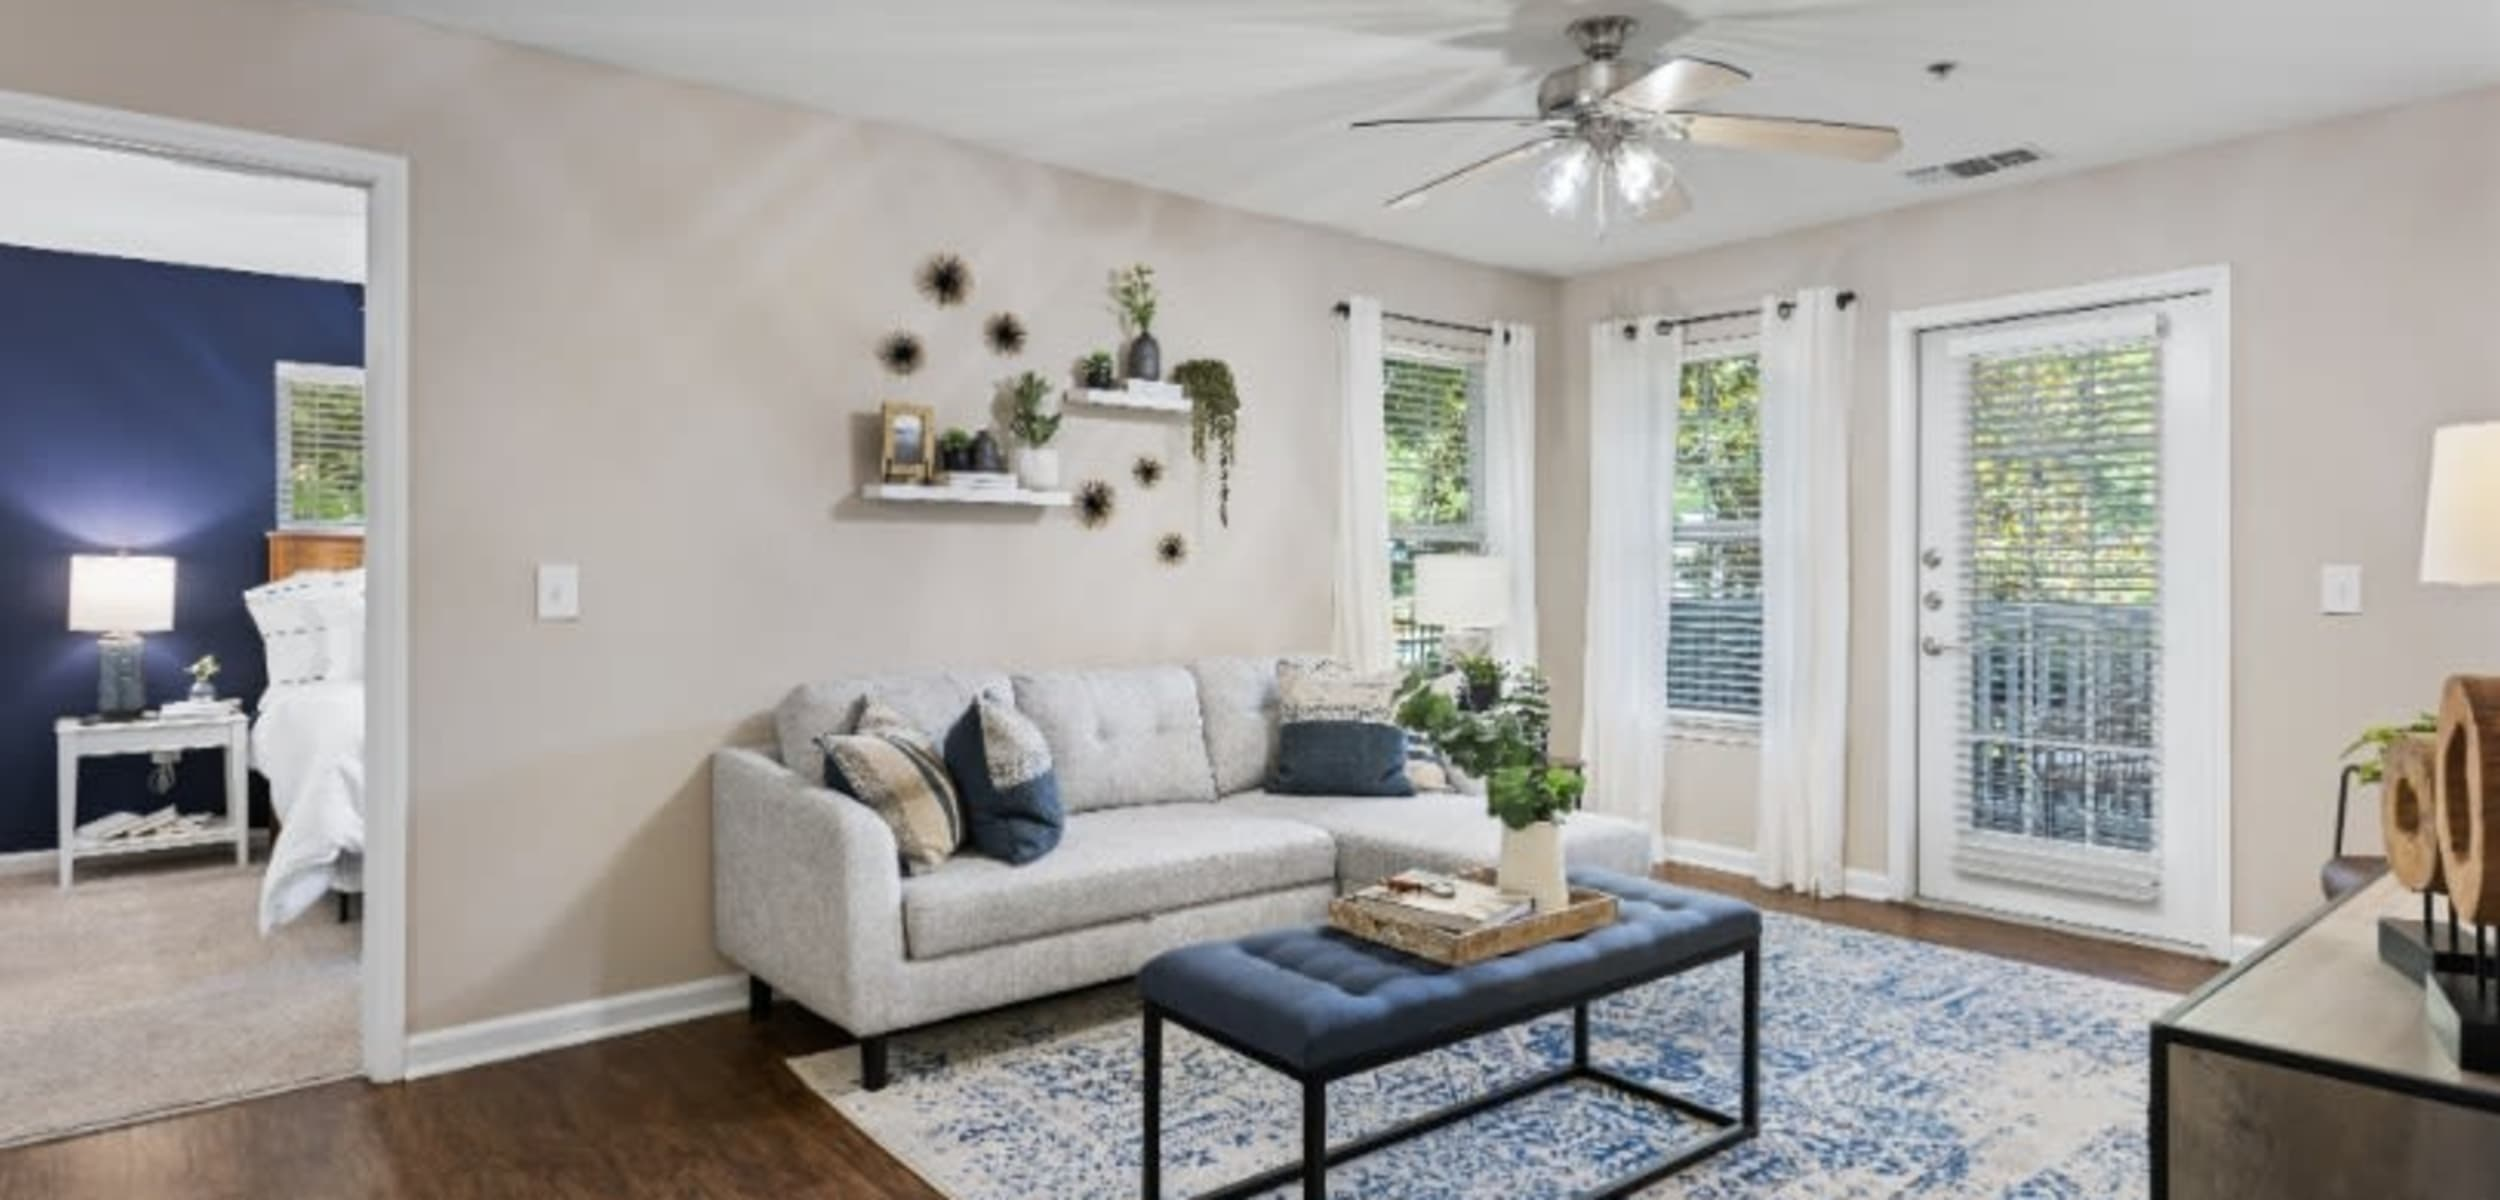 Bright and open living area with wood flooring and ceiling fan at Marquis on Cary Parkway in Morrisville, North Carolina